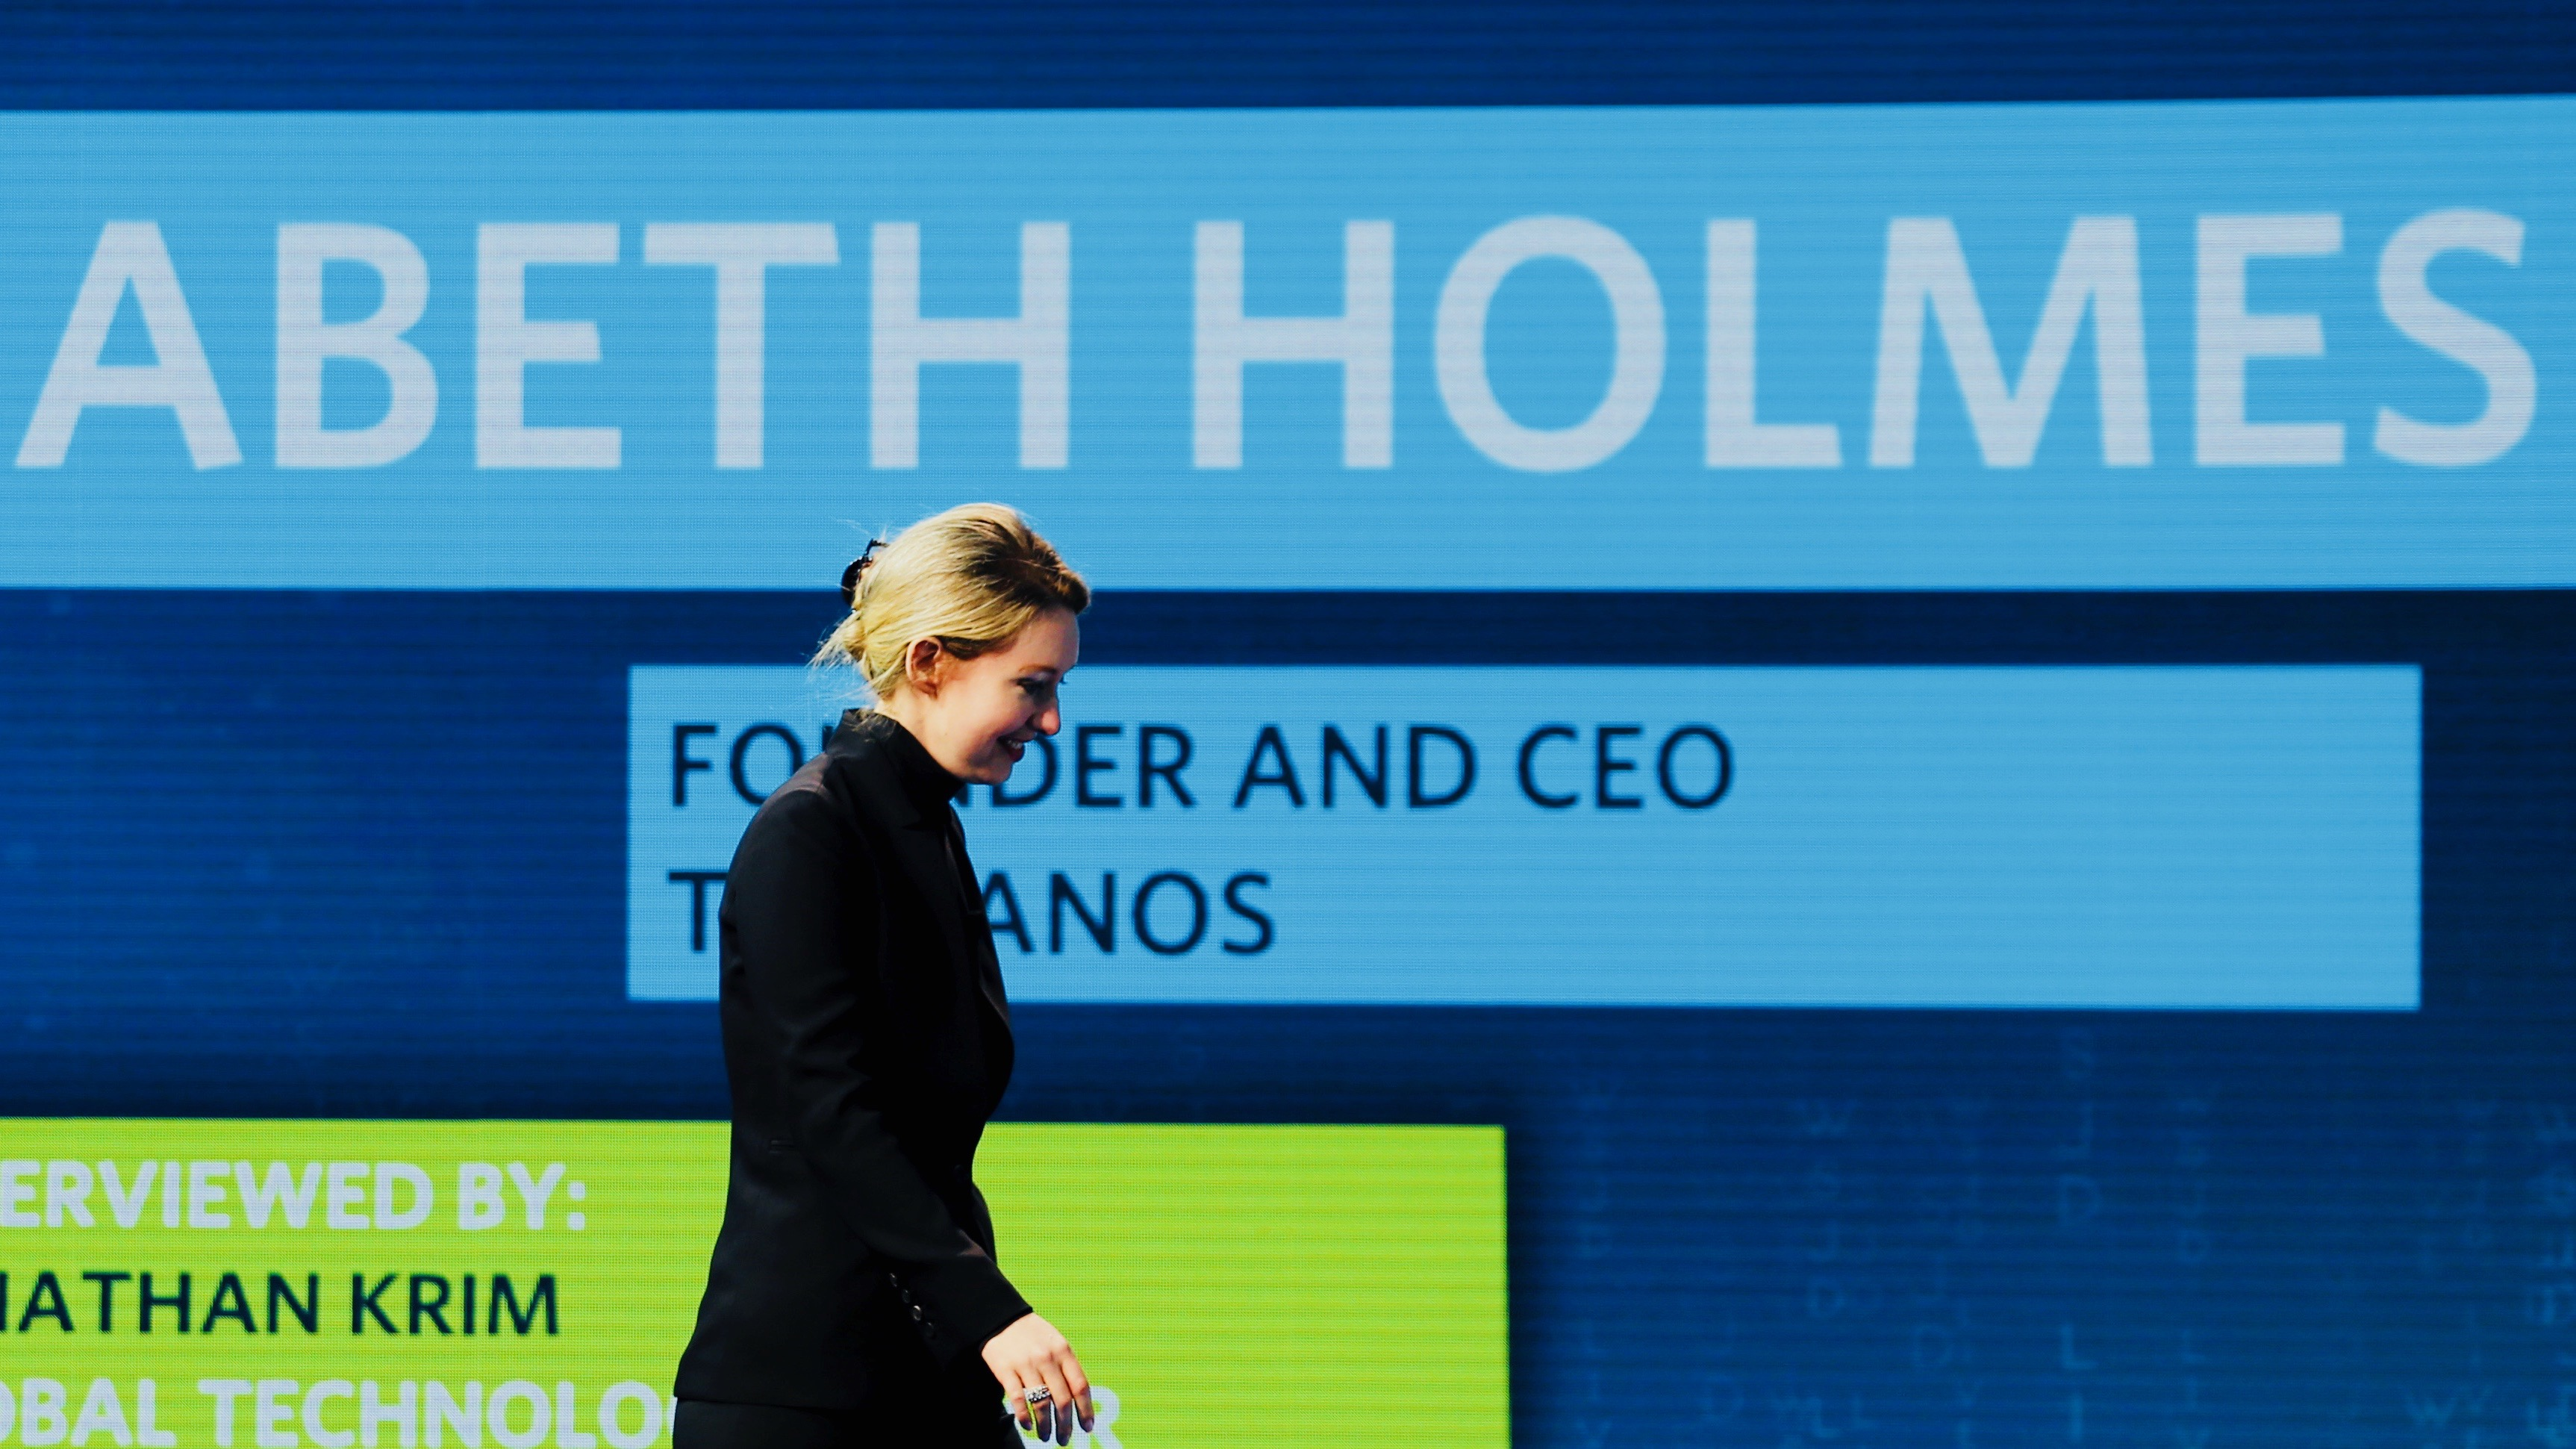 Theranos CEO Elizabeth Holmes steps down following fraud indictment